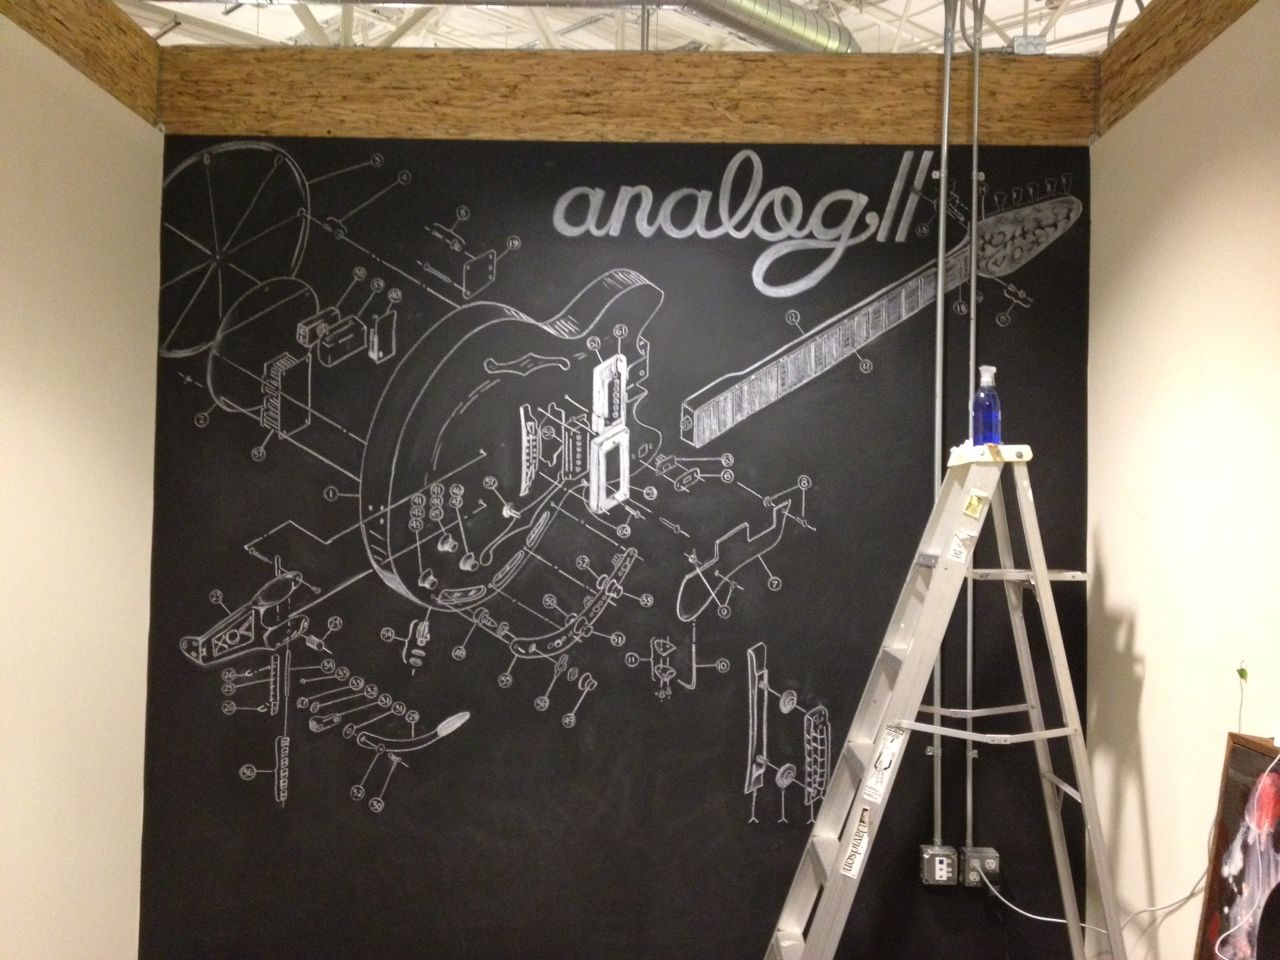 chalkboard paint wall guitar mural done by hand with chalk and chalkboard paint wall guitar mural done by hand with chalk and projector